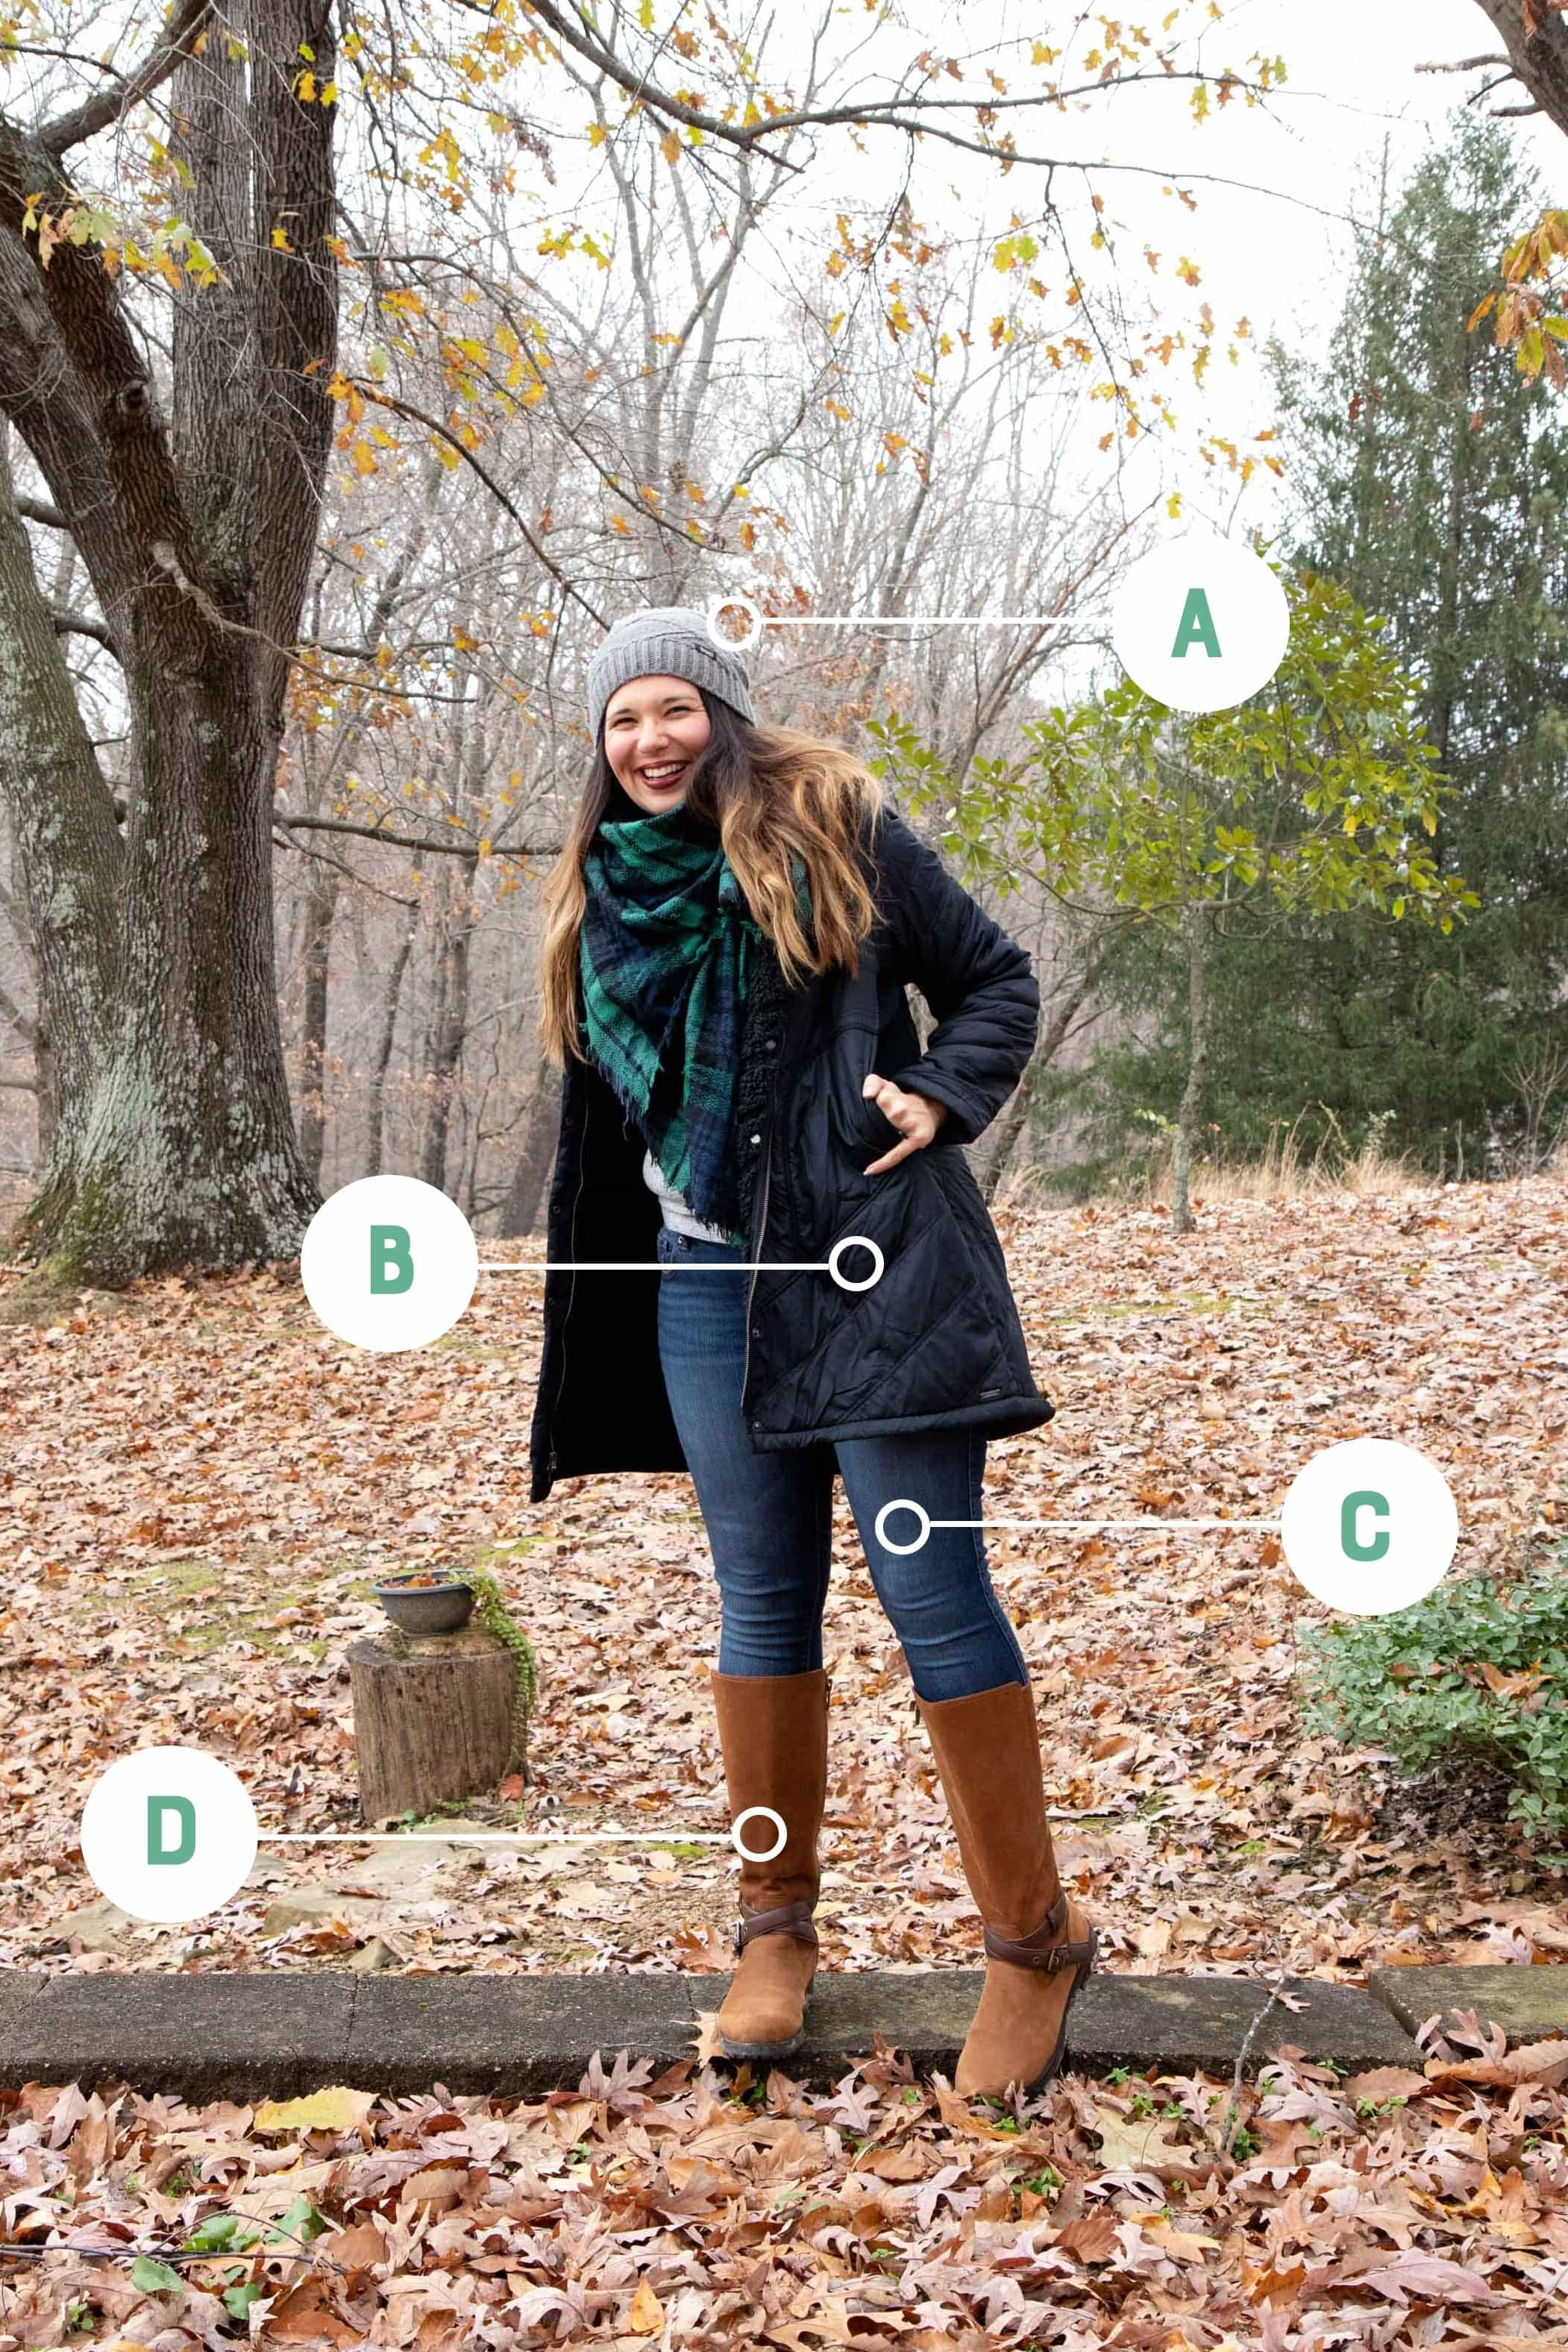 Brunette woman standing outside in the fall and smiling. Clothing items are labeled with letters - hat, coat, jeggings, and boots